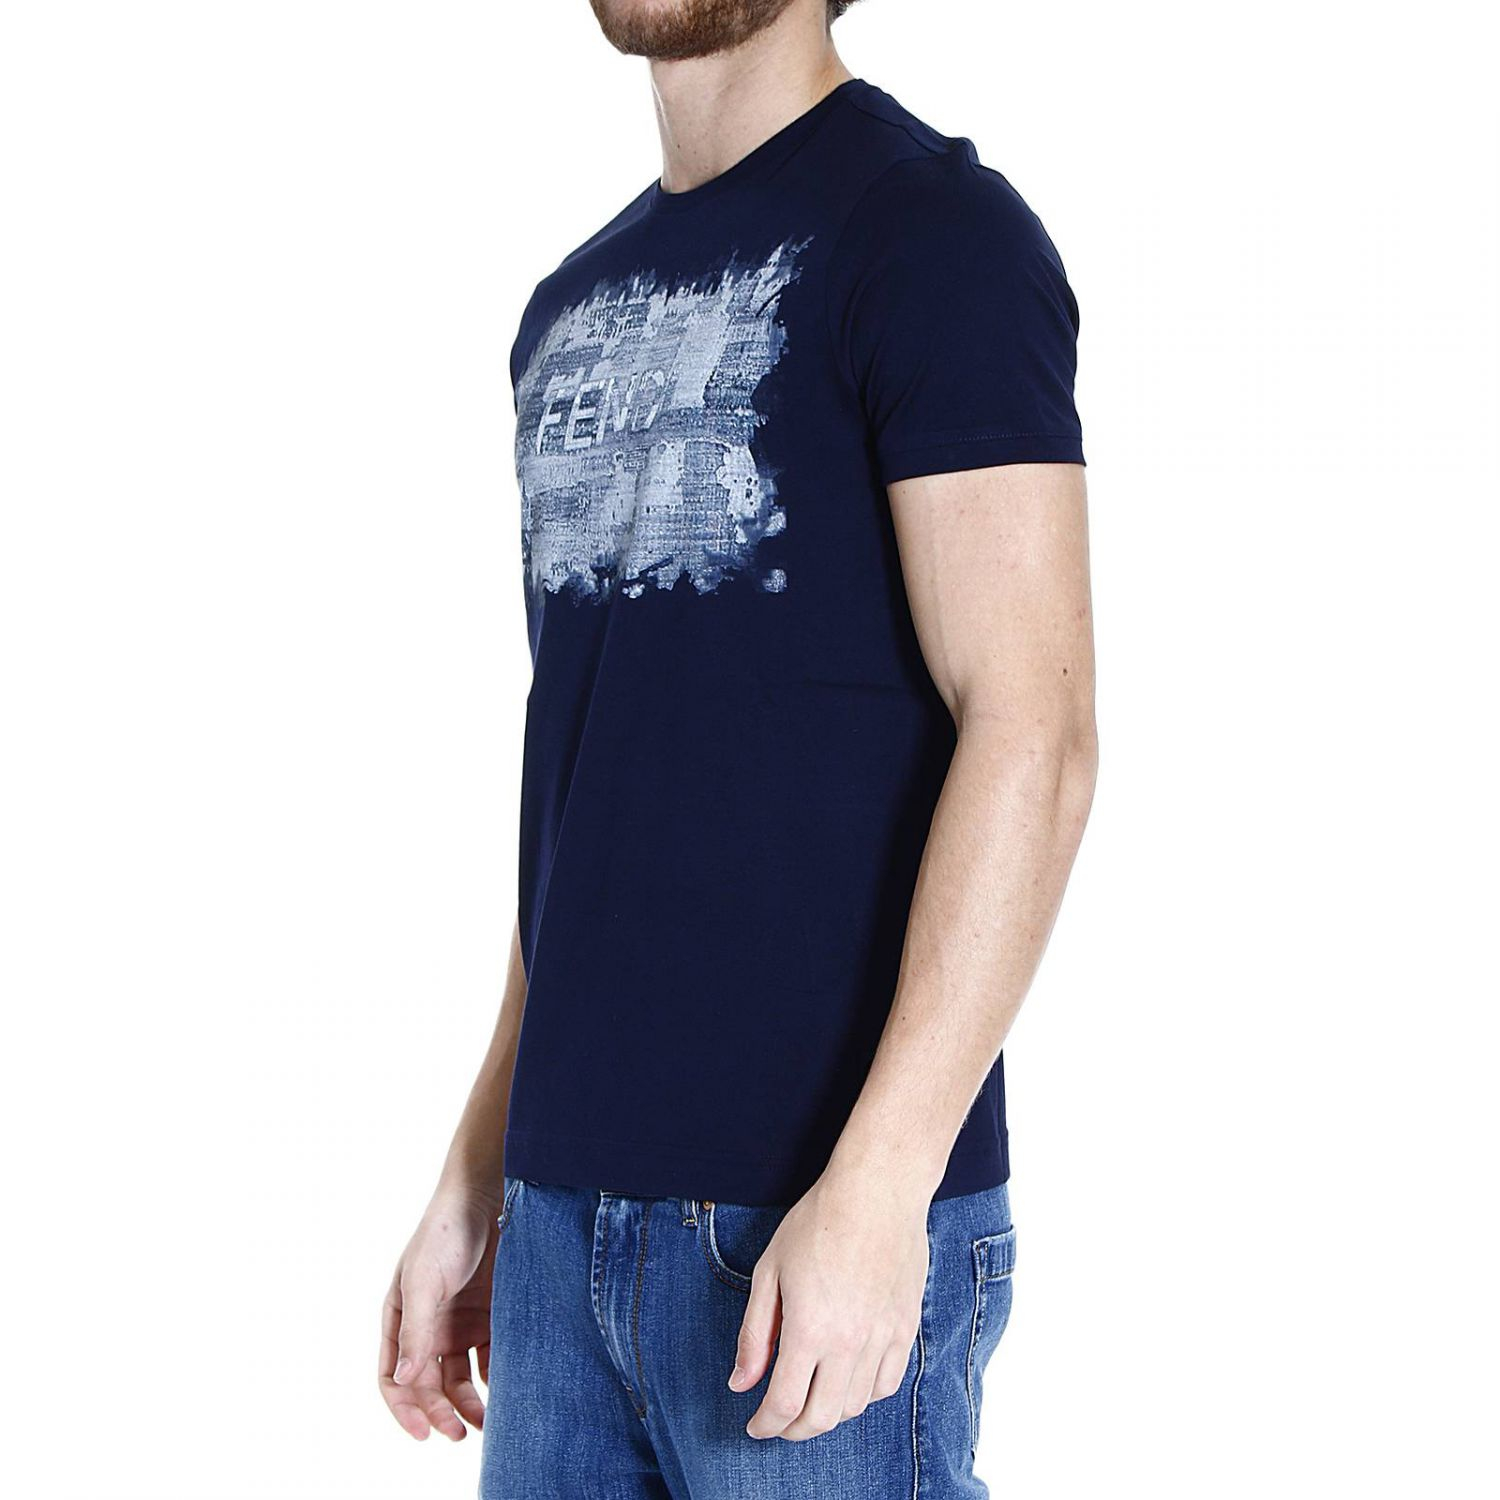 Fendi T Shirt Half Sleeve With Print Scritta Denim Big In